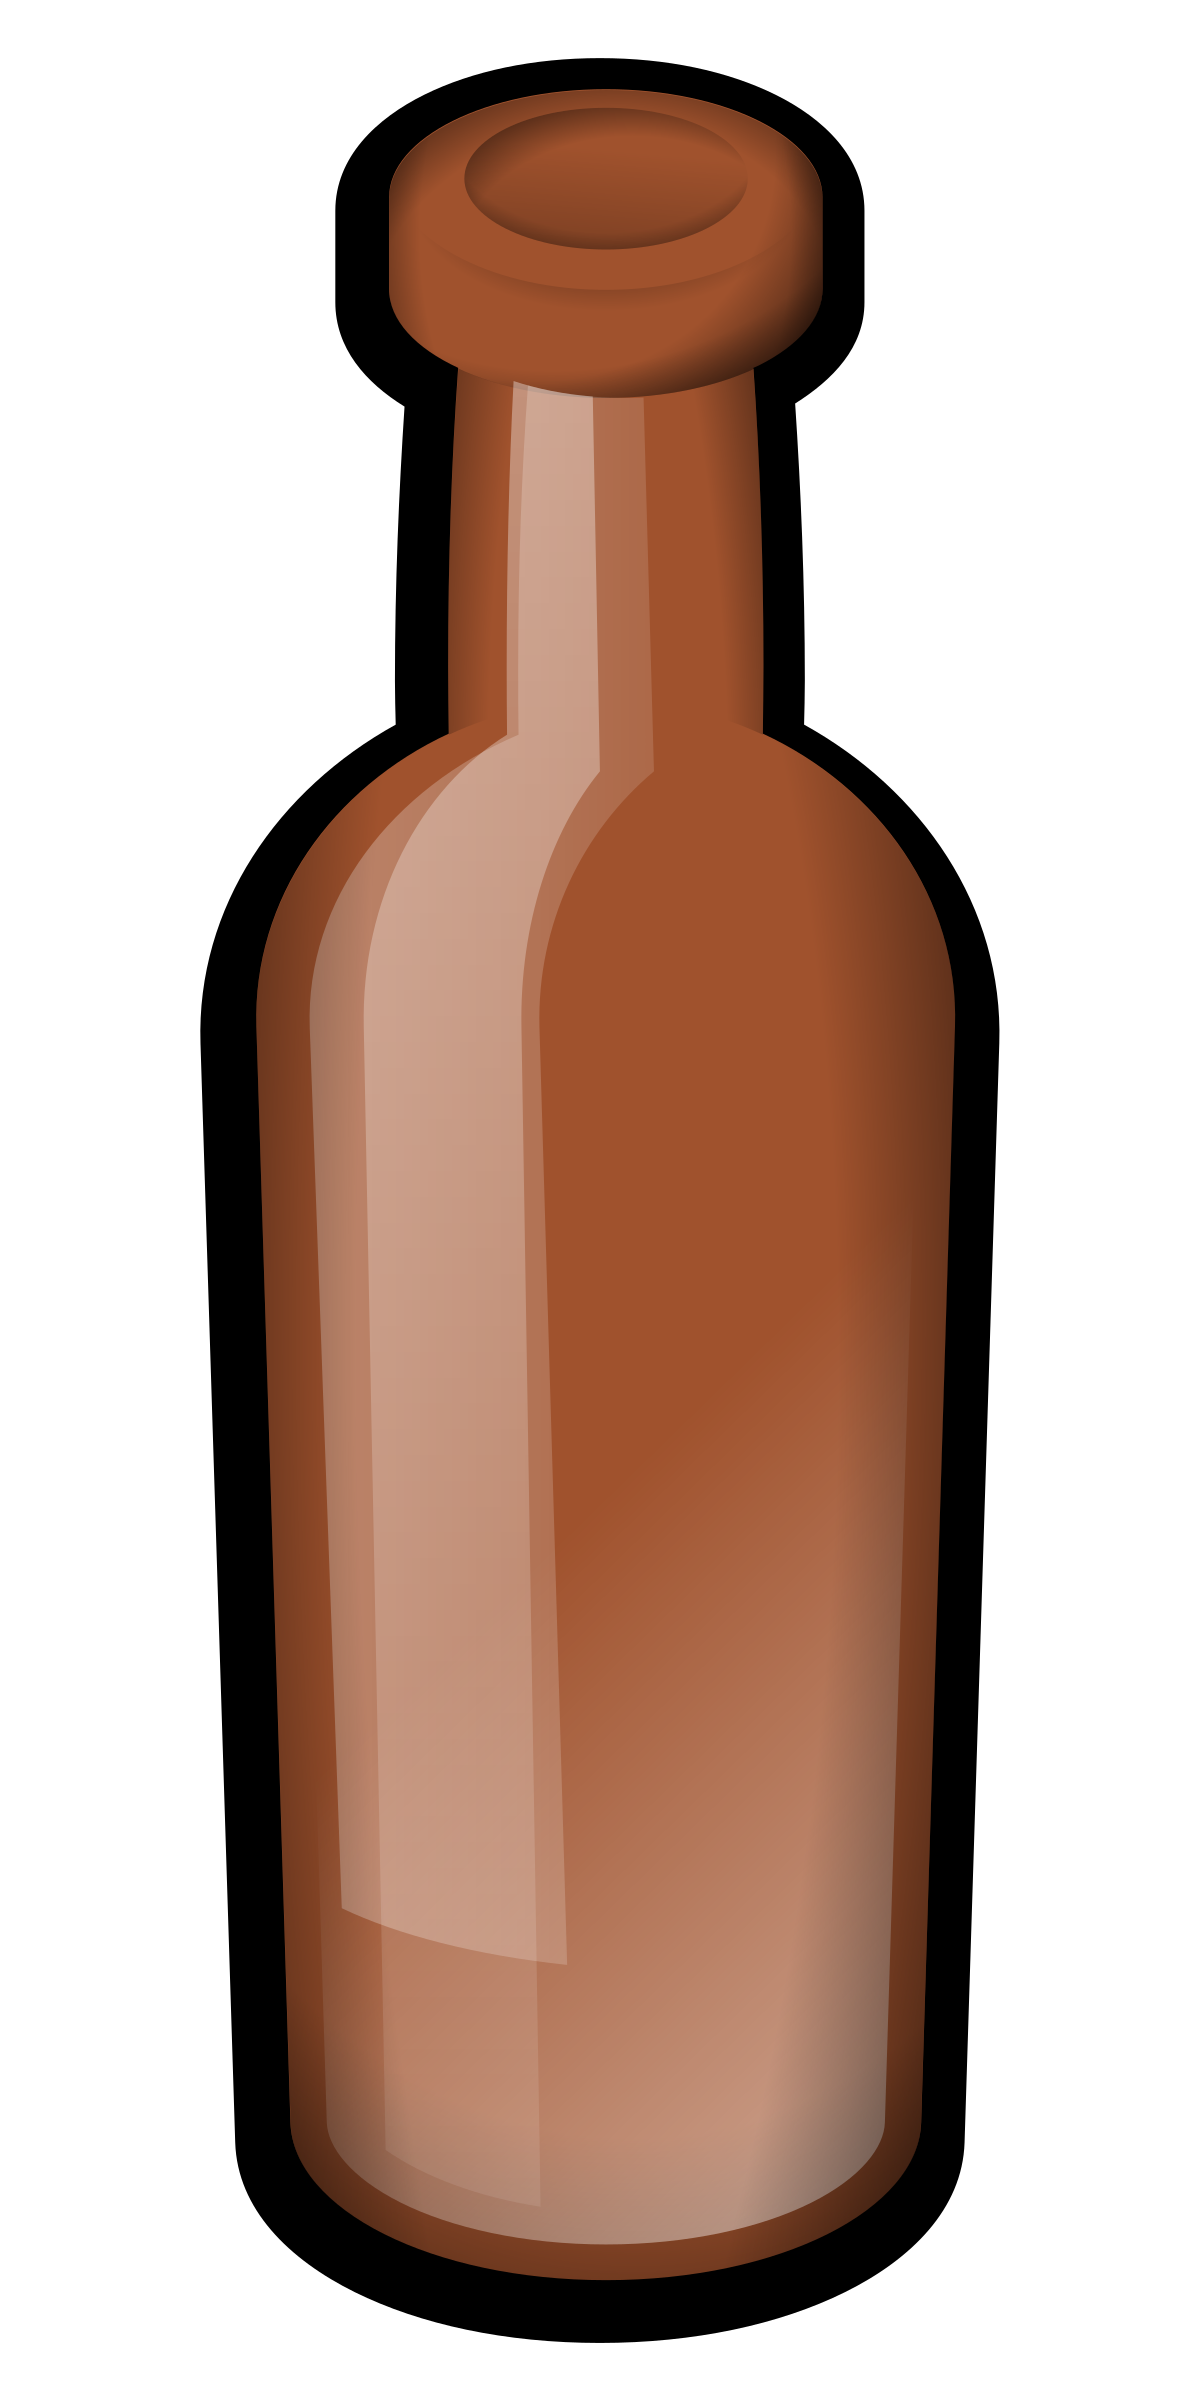 Bottle by jonata